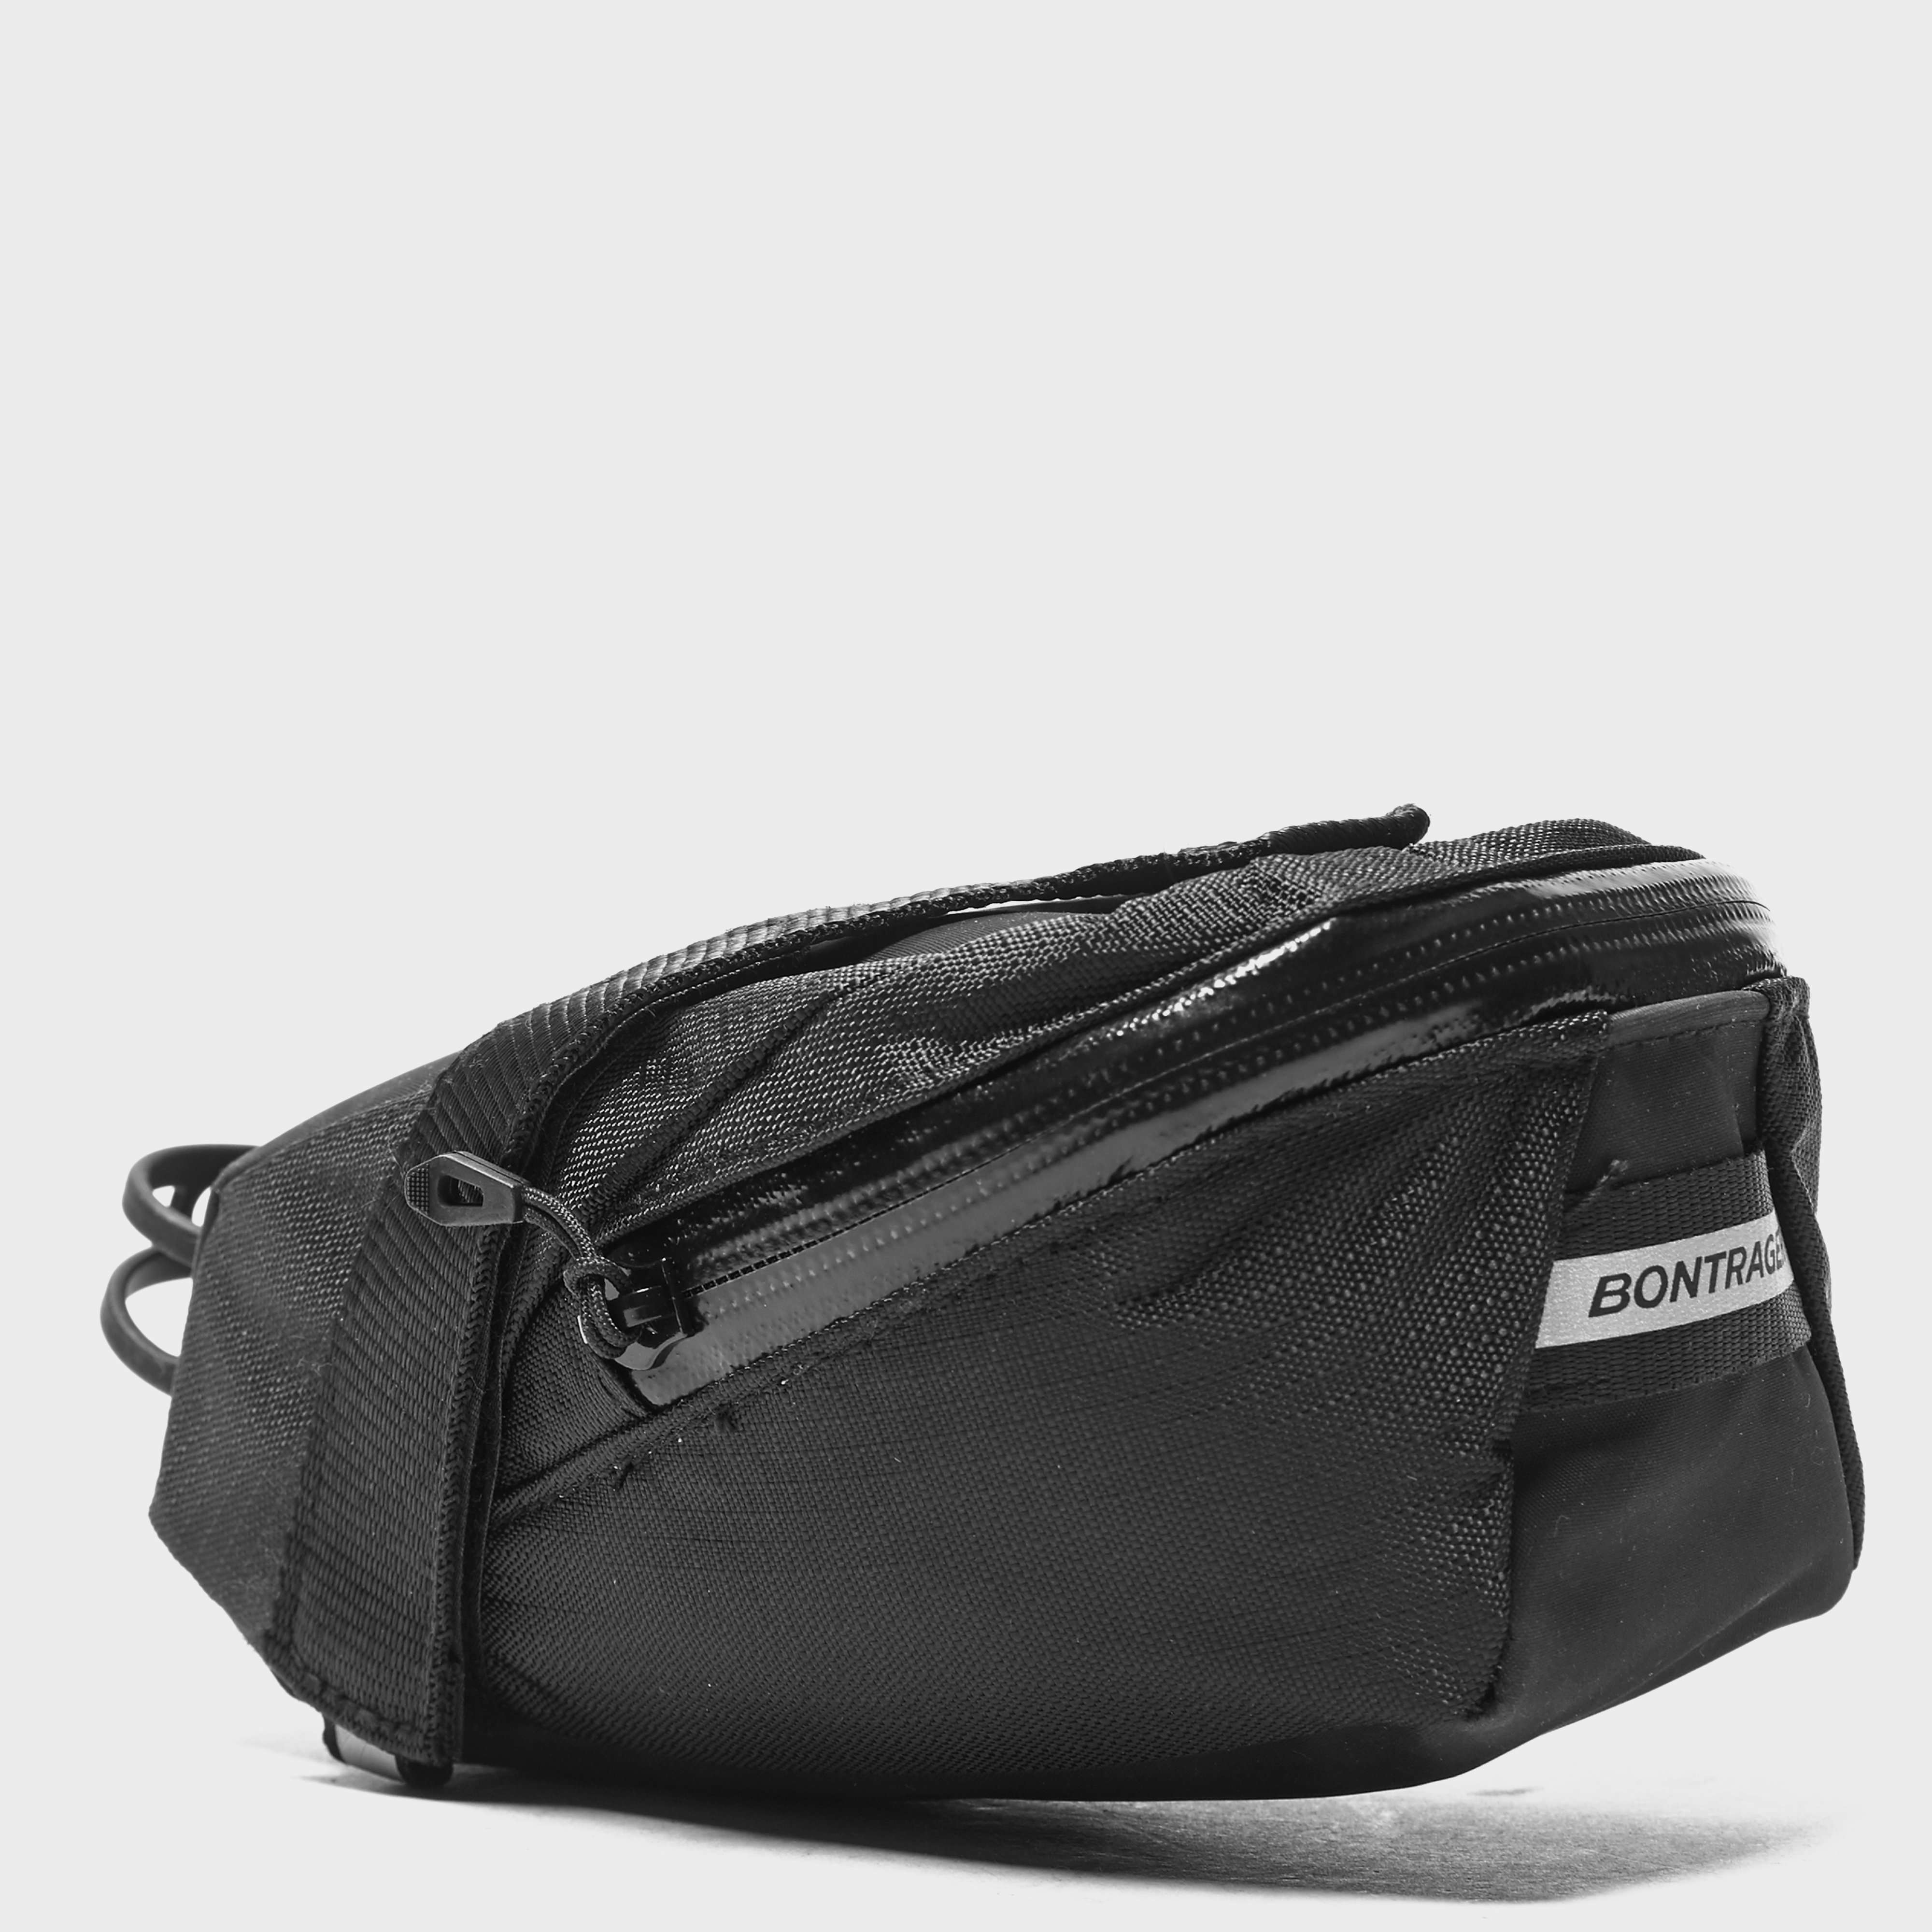 BONTRAGER Elite Seat Pack (Large)